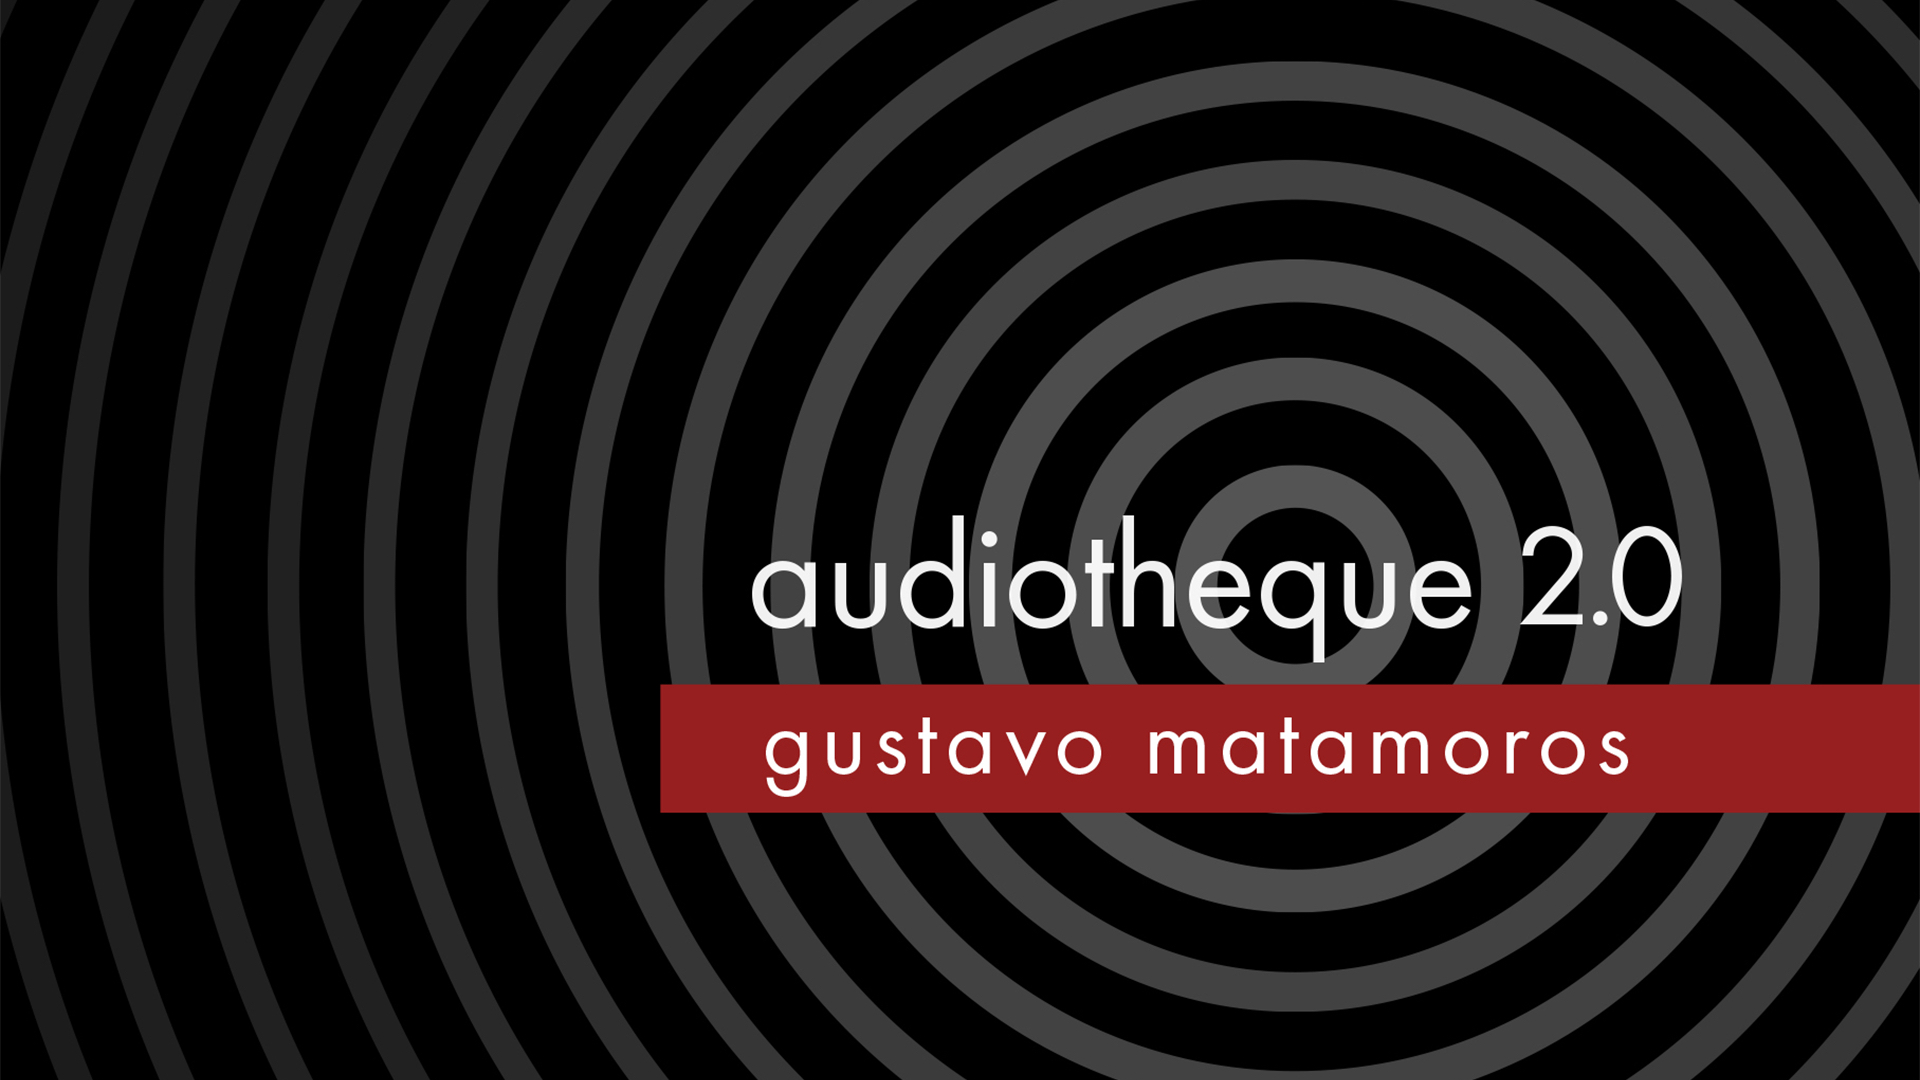 Thumbnail for the post titled: Audiotheque